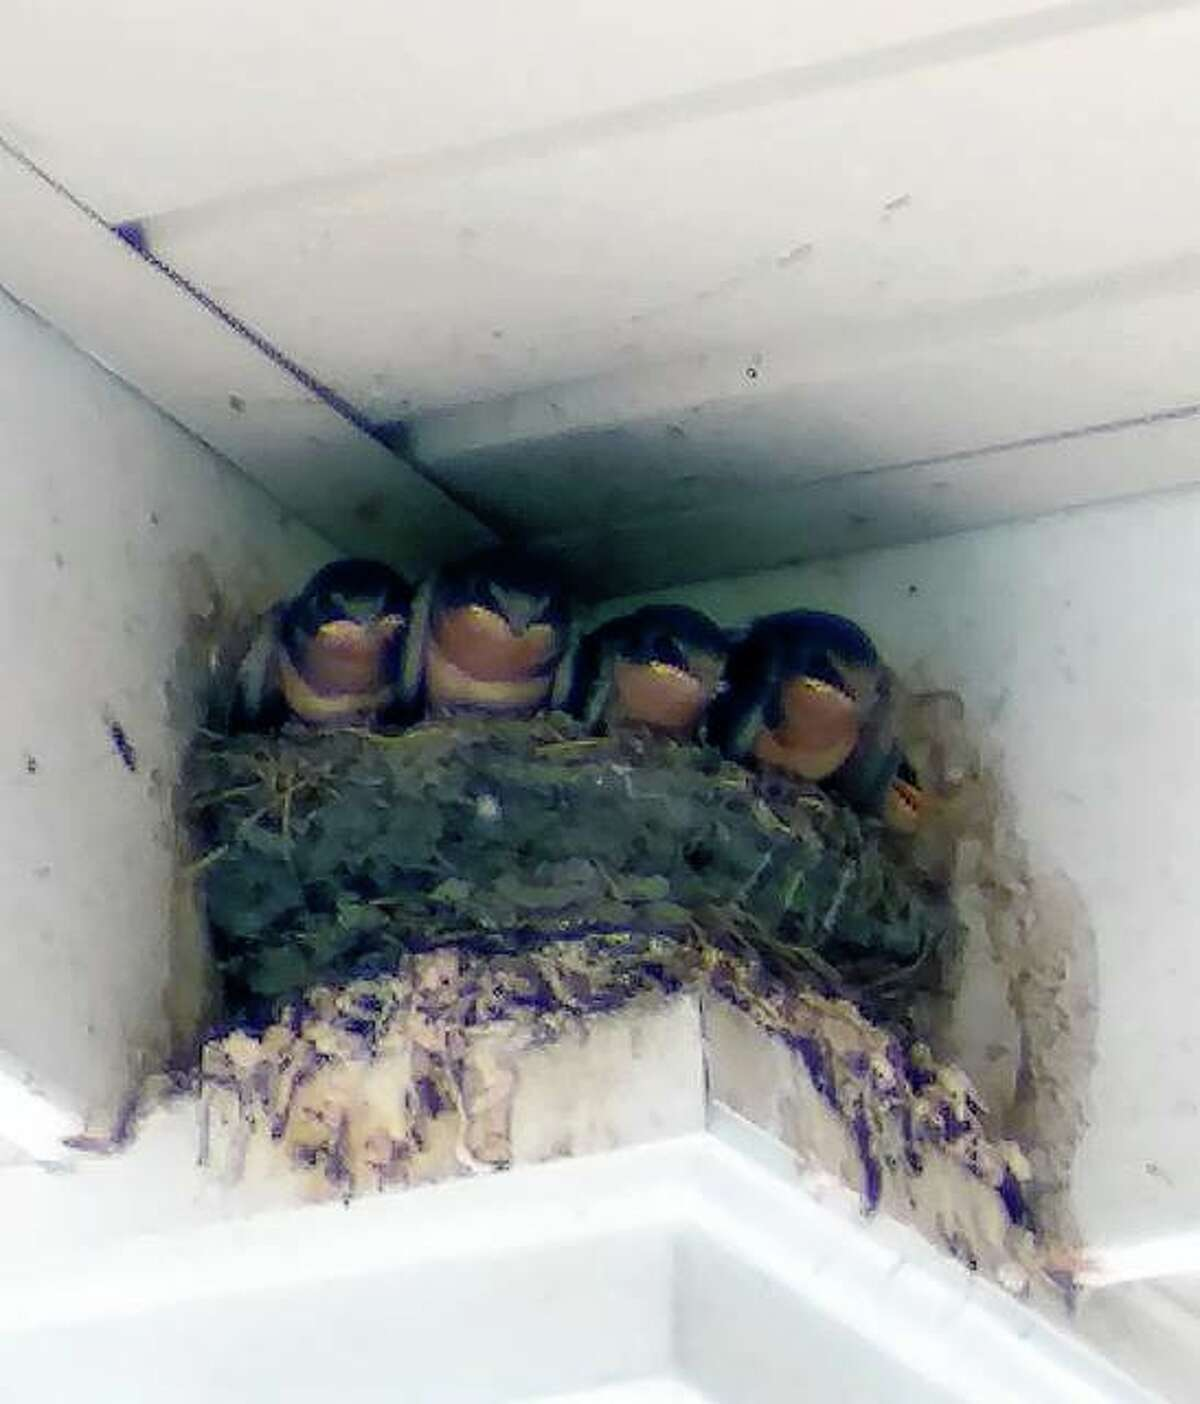 Young barn swallows sit in a nest Tuesday afternoon at Jacksonville Area Senior Center in Community Park. Seniors visiting the center were able to enjoy watching the birds.